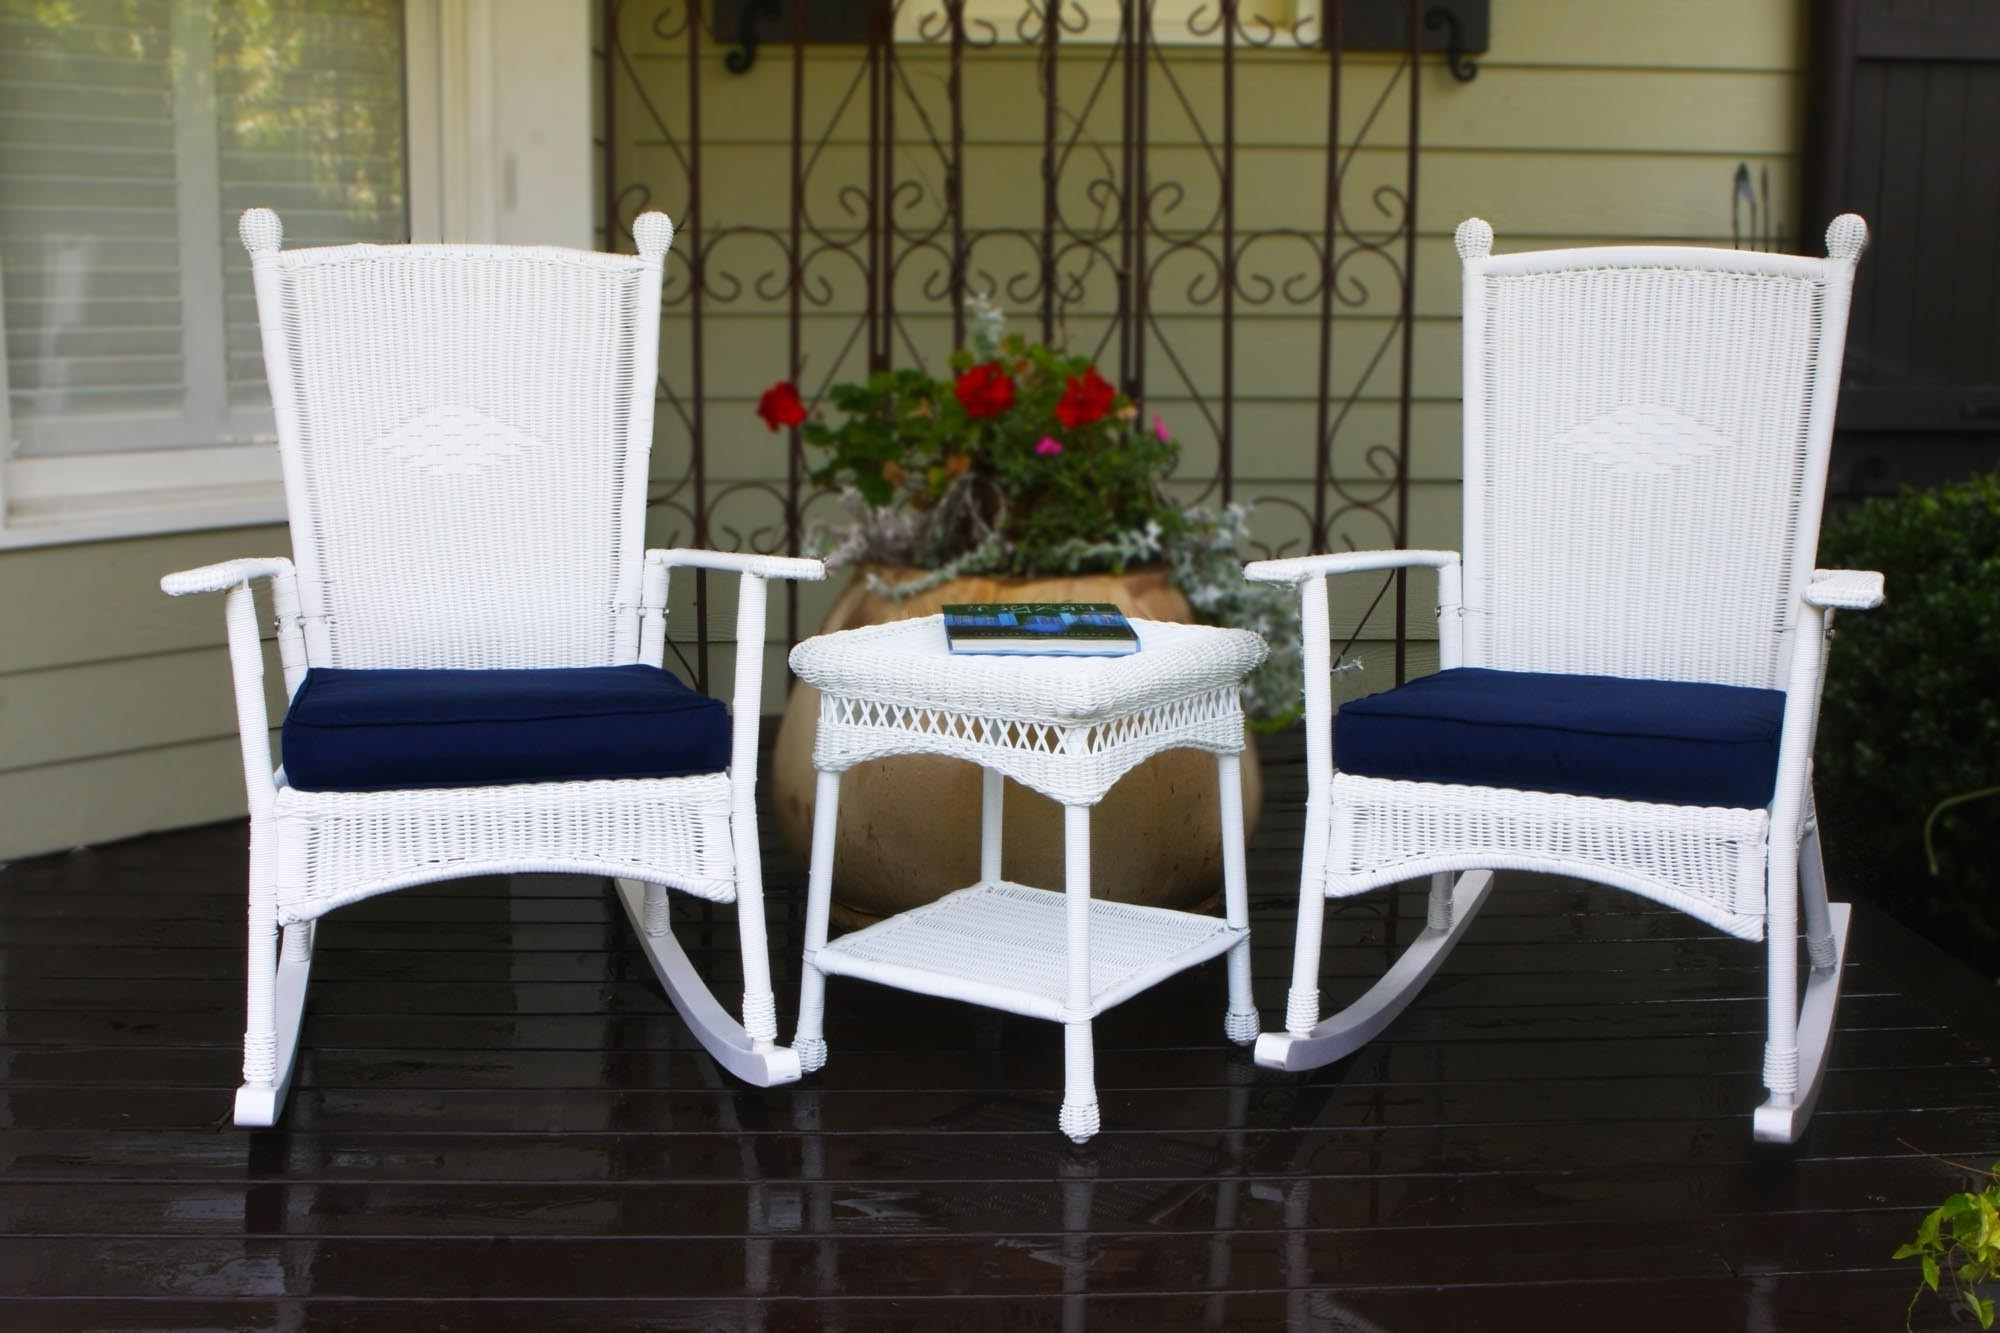 Preferred White Wicker Rocking Chairs Pertaining To Childs White Wicker Rocking Chair (View 10 of 20)